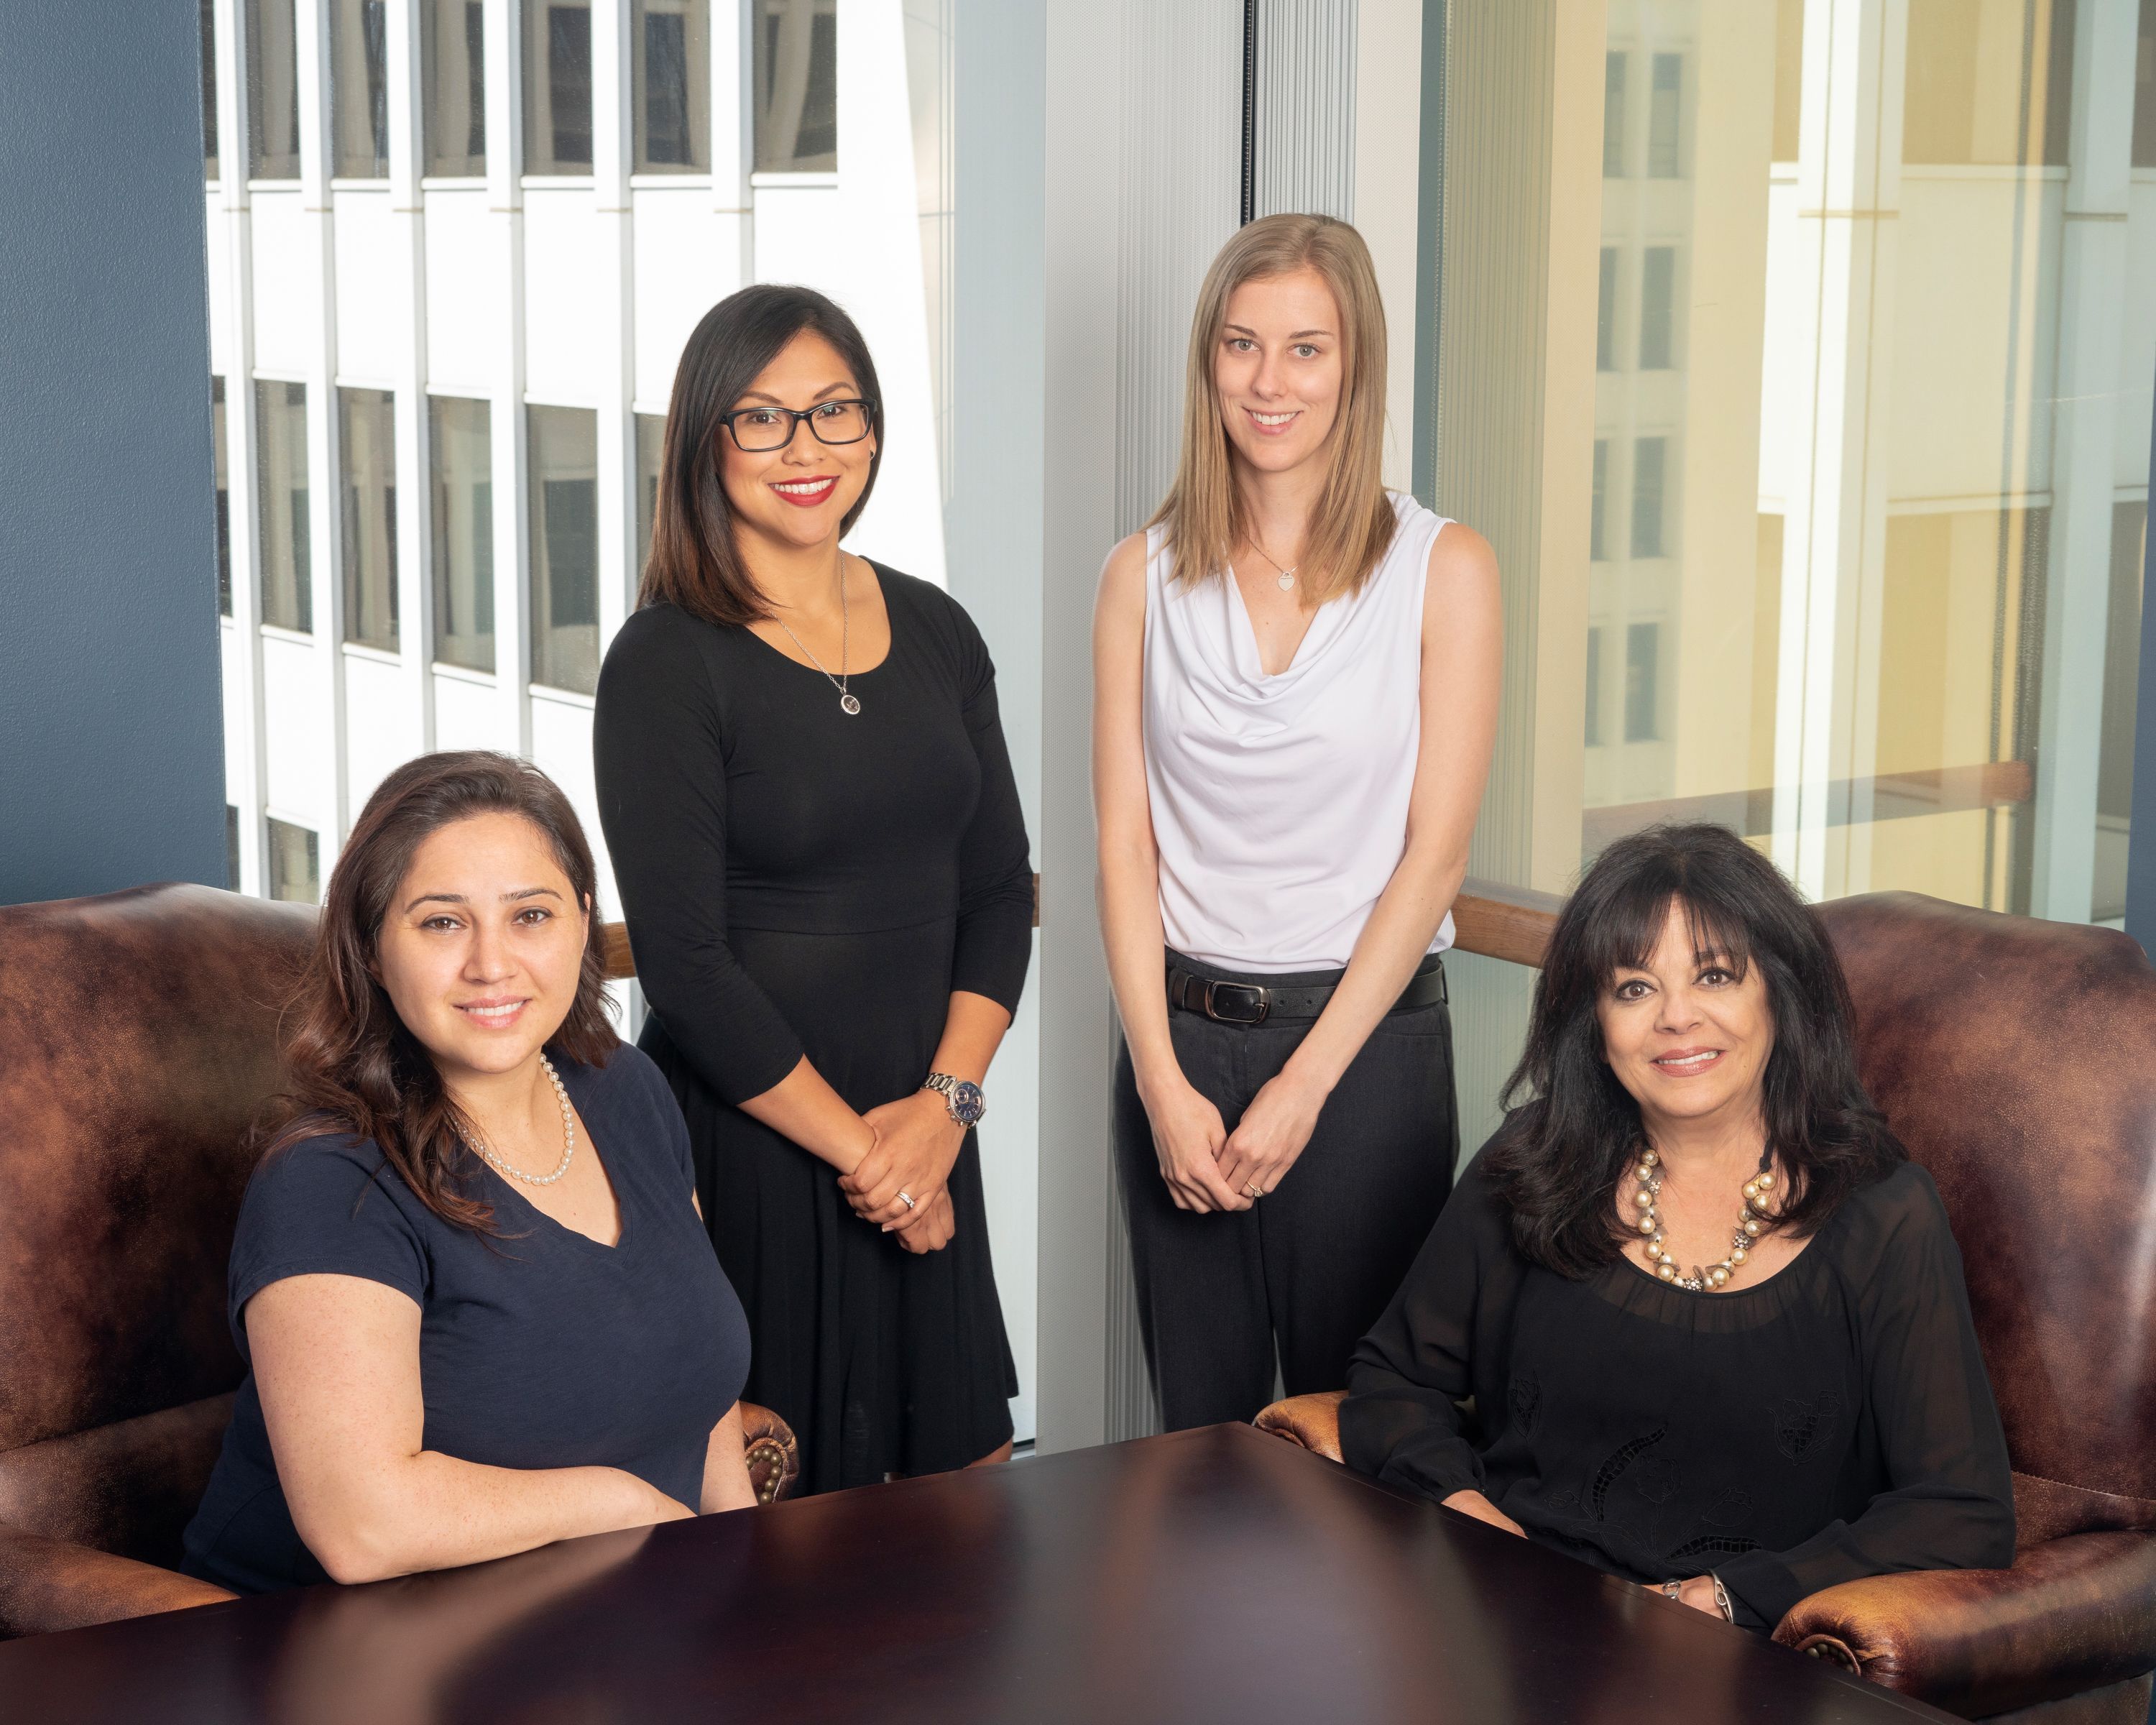 Group photo of four paralegals